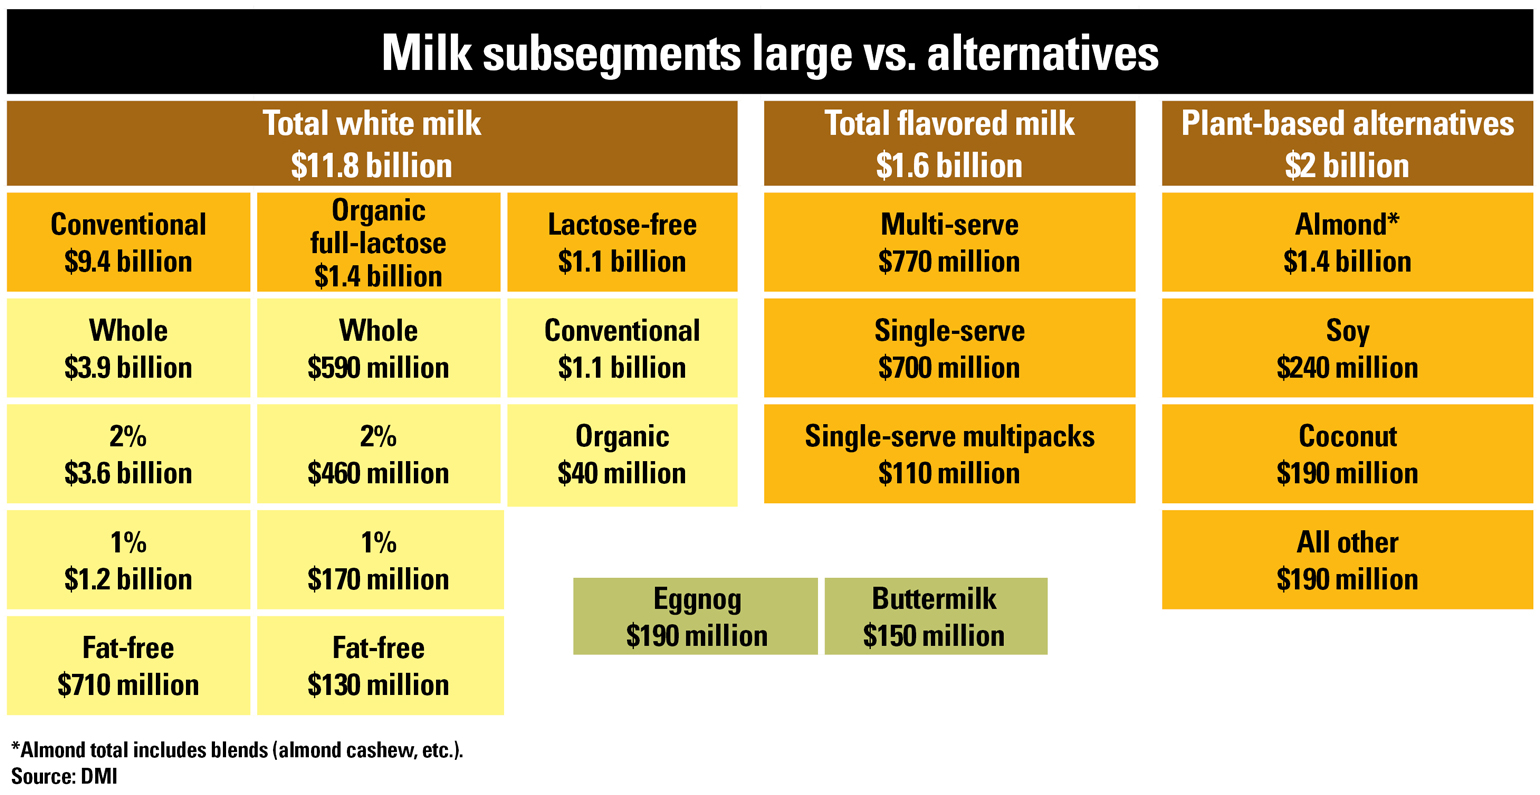 table showing milk subsegments versus alternatives